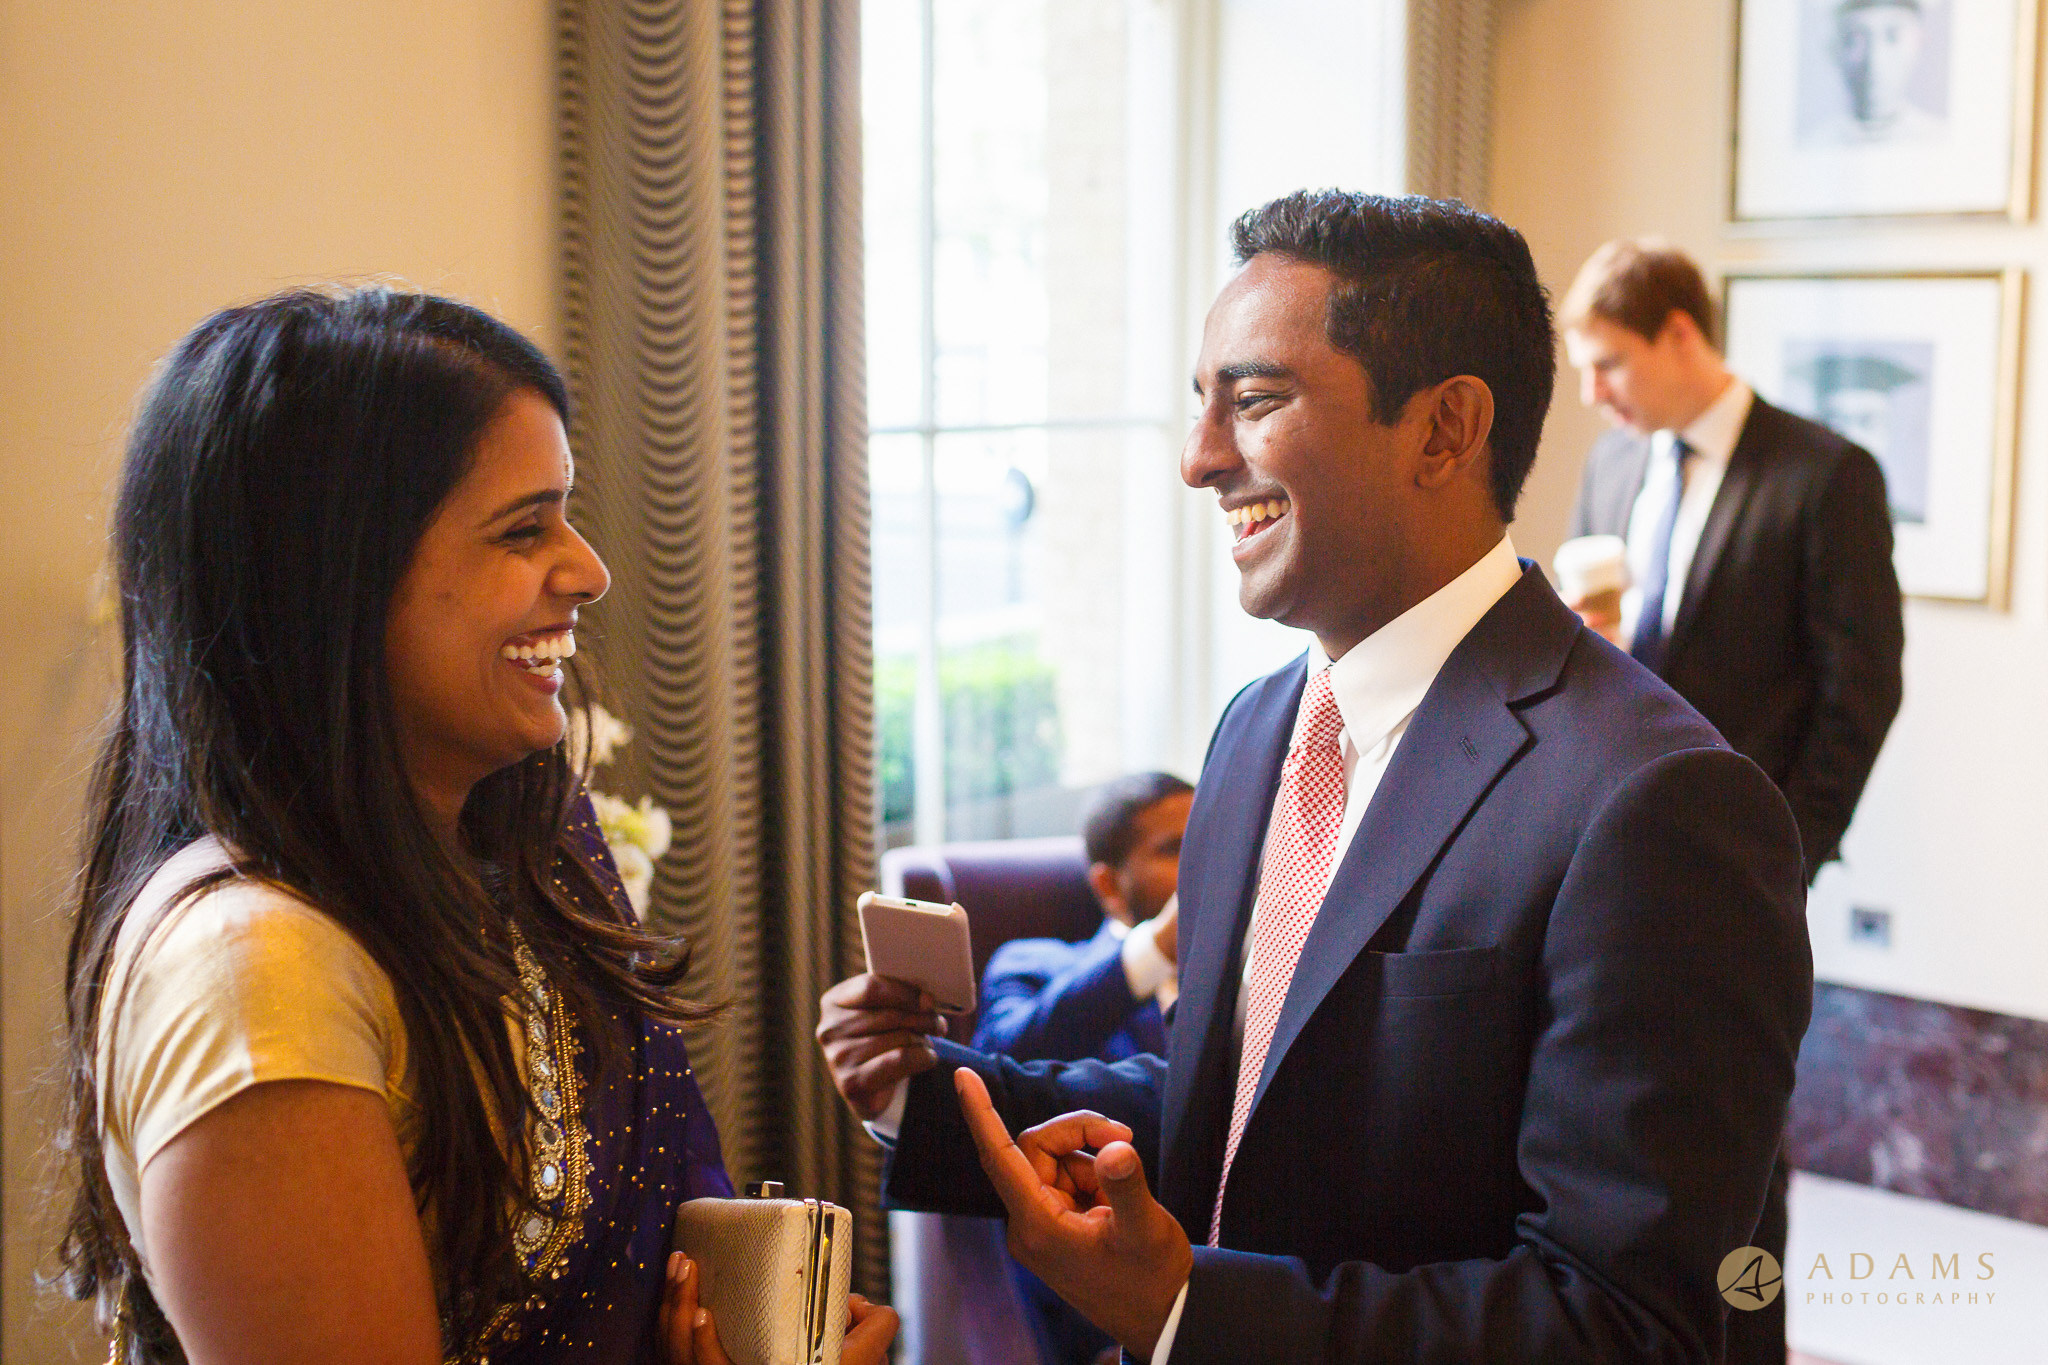 Guests arrive to the he Langham hotel London